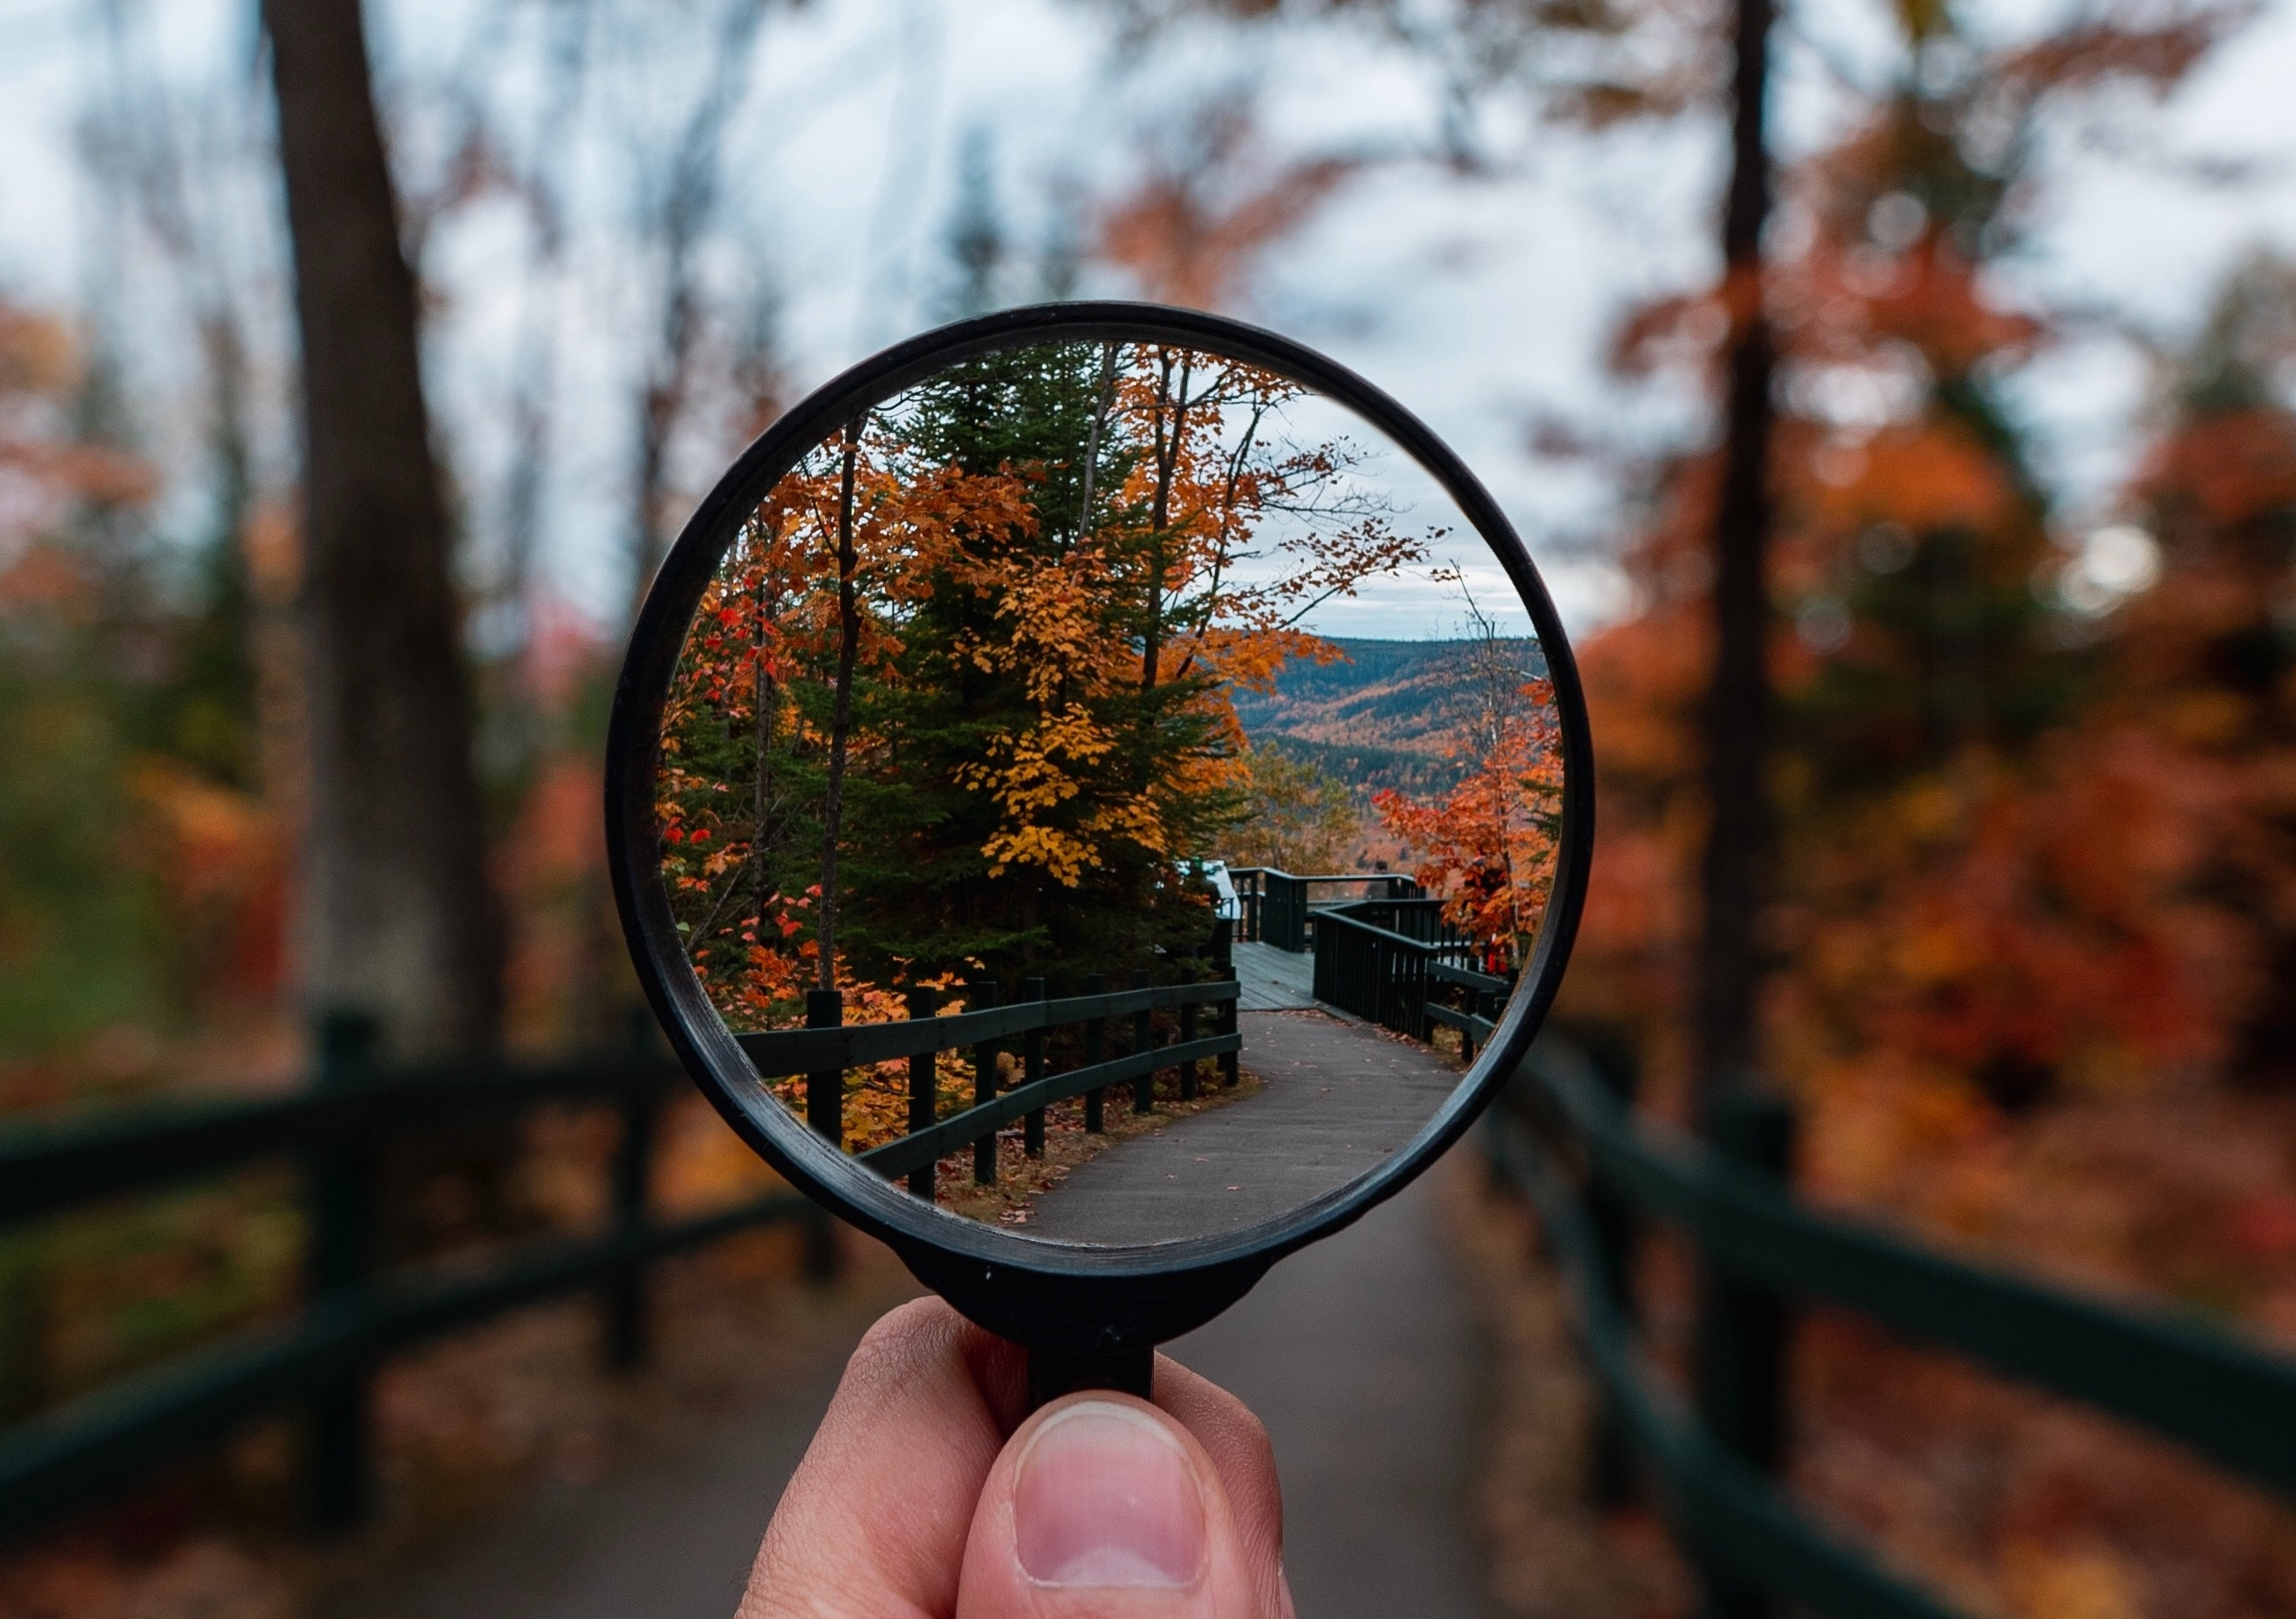 Magnifying glass point of view